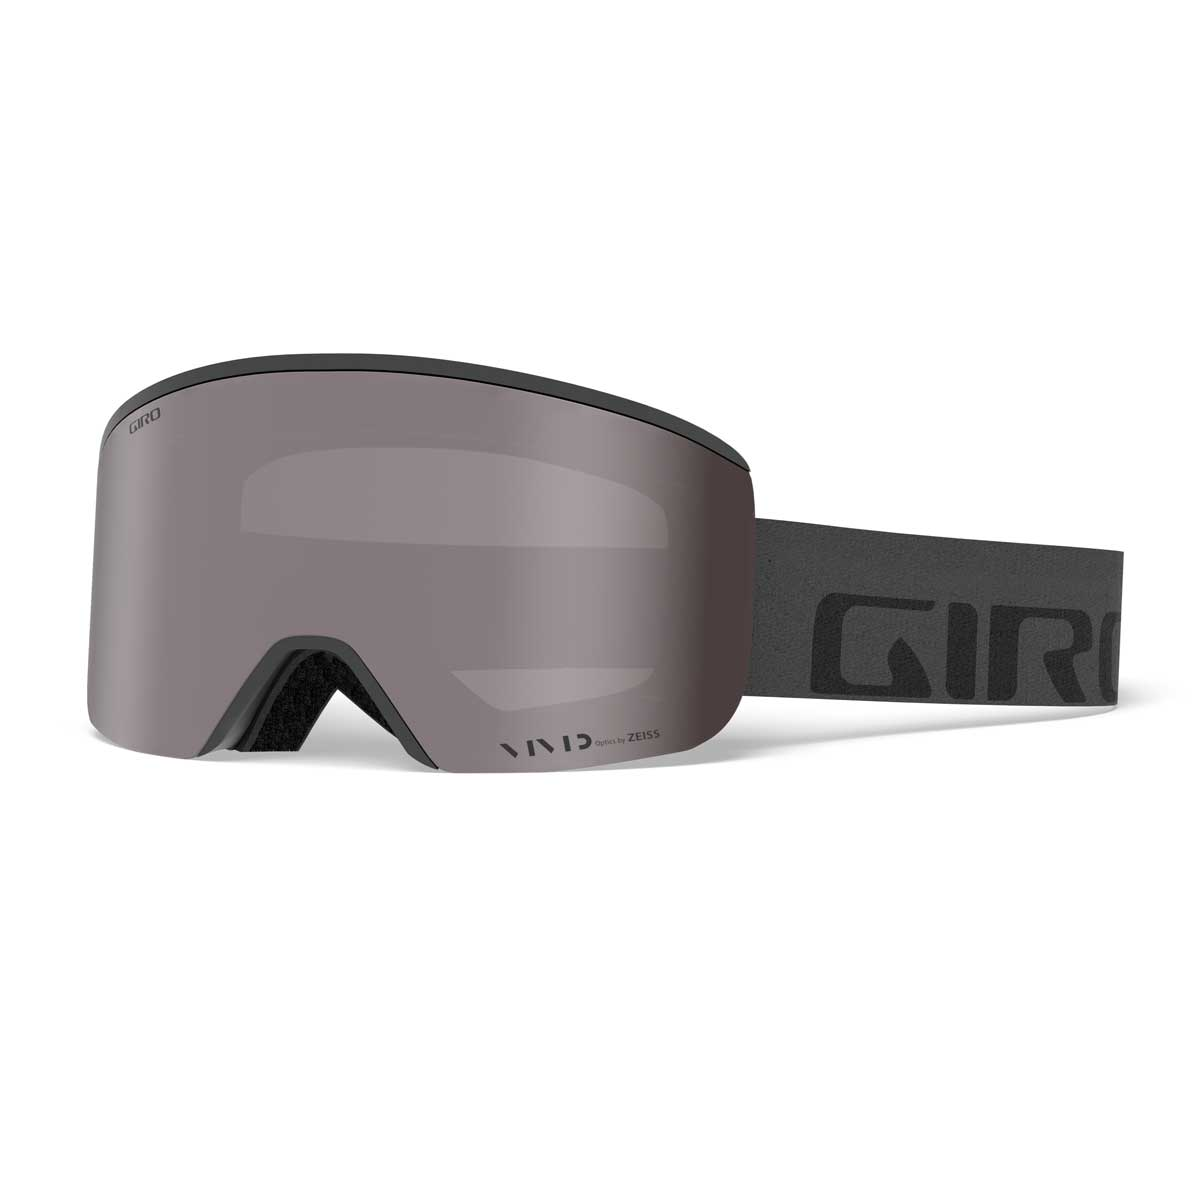 Giro Axis Goggle with Bonus Lens'